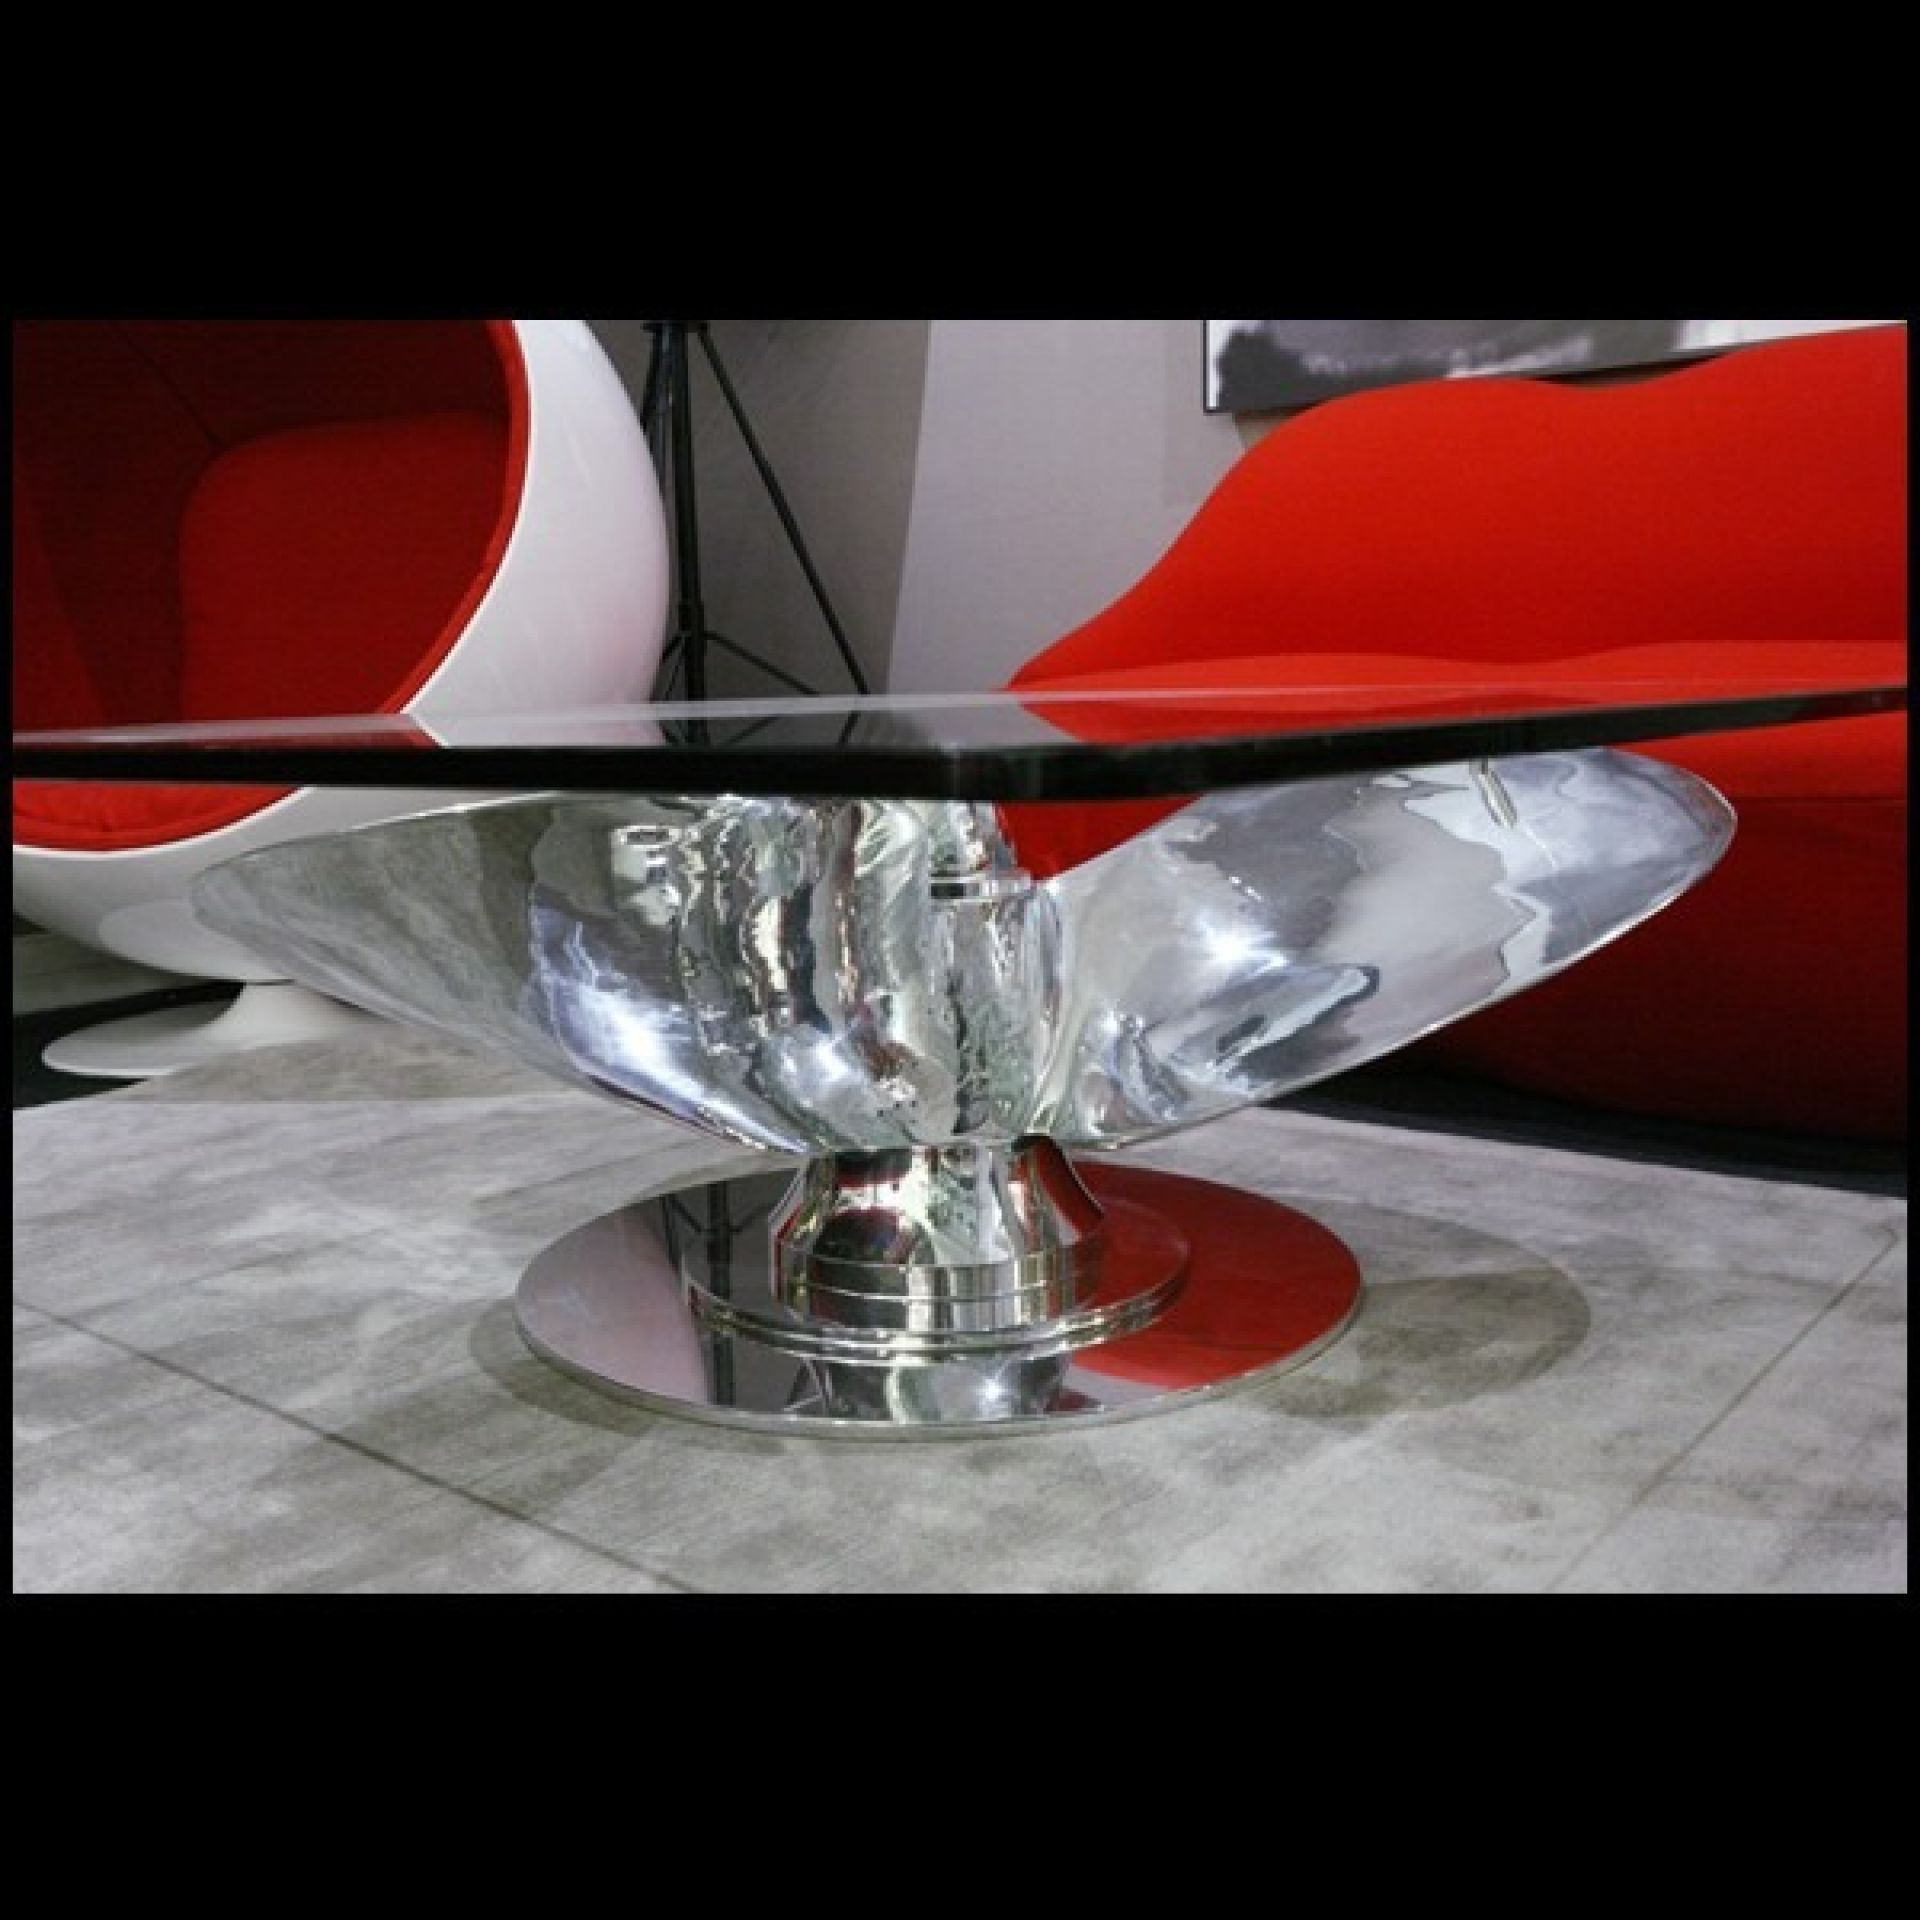 LOW PROFILE POLISHED ALUMINUM ALLOY THREE-BLADE PROPELLER TABLE PC-NAVY BOAT PAT